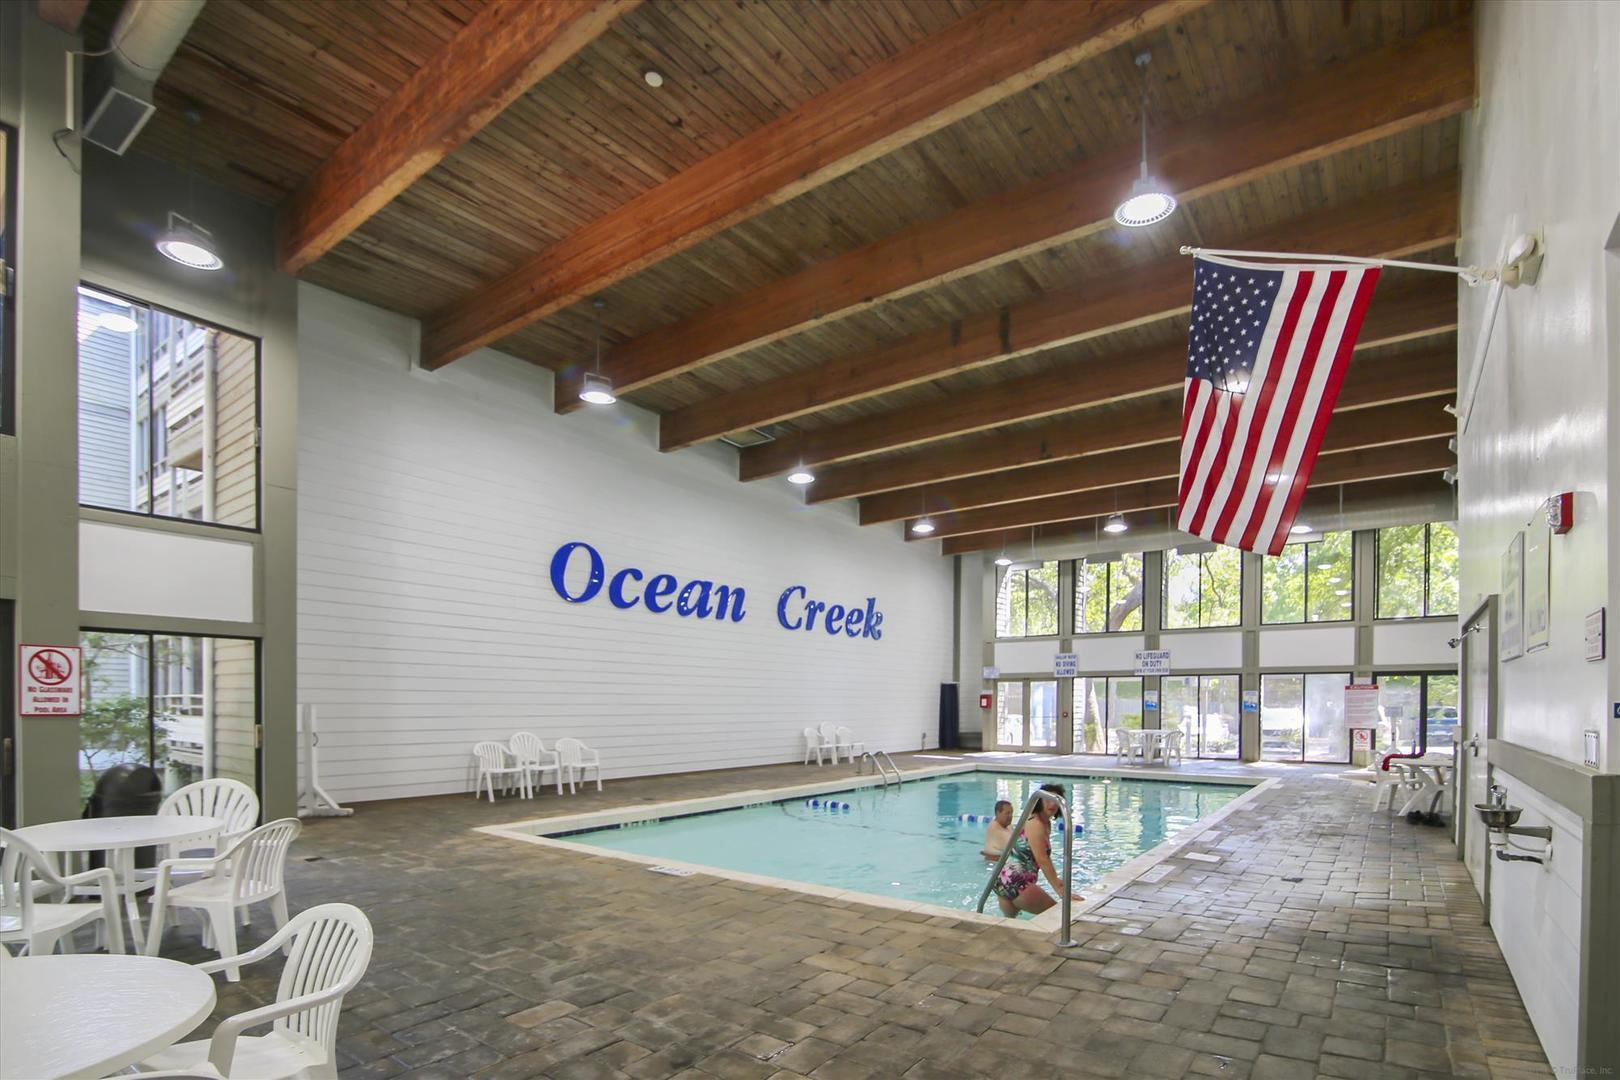 Ocean Creek Garden Home 41 - Indoor Pool